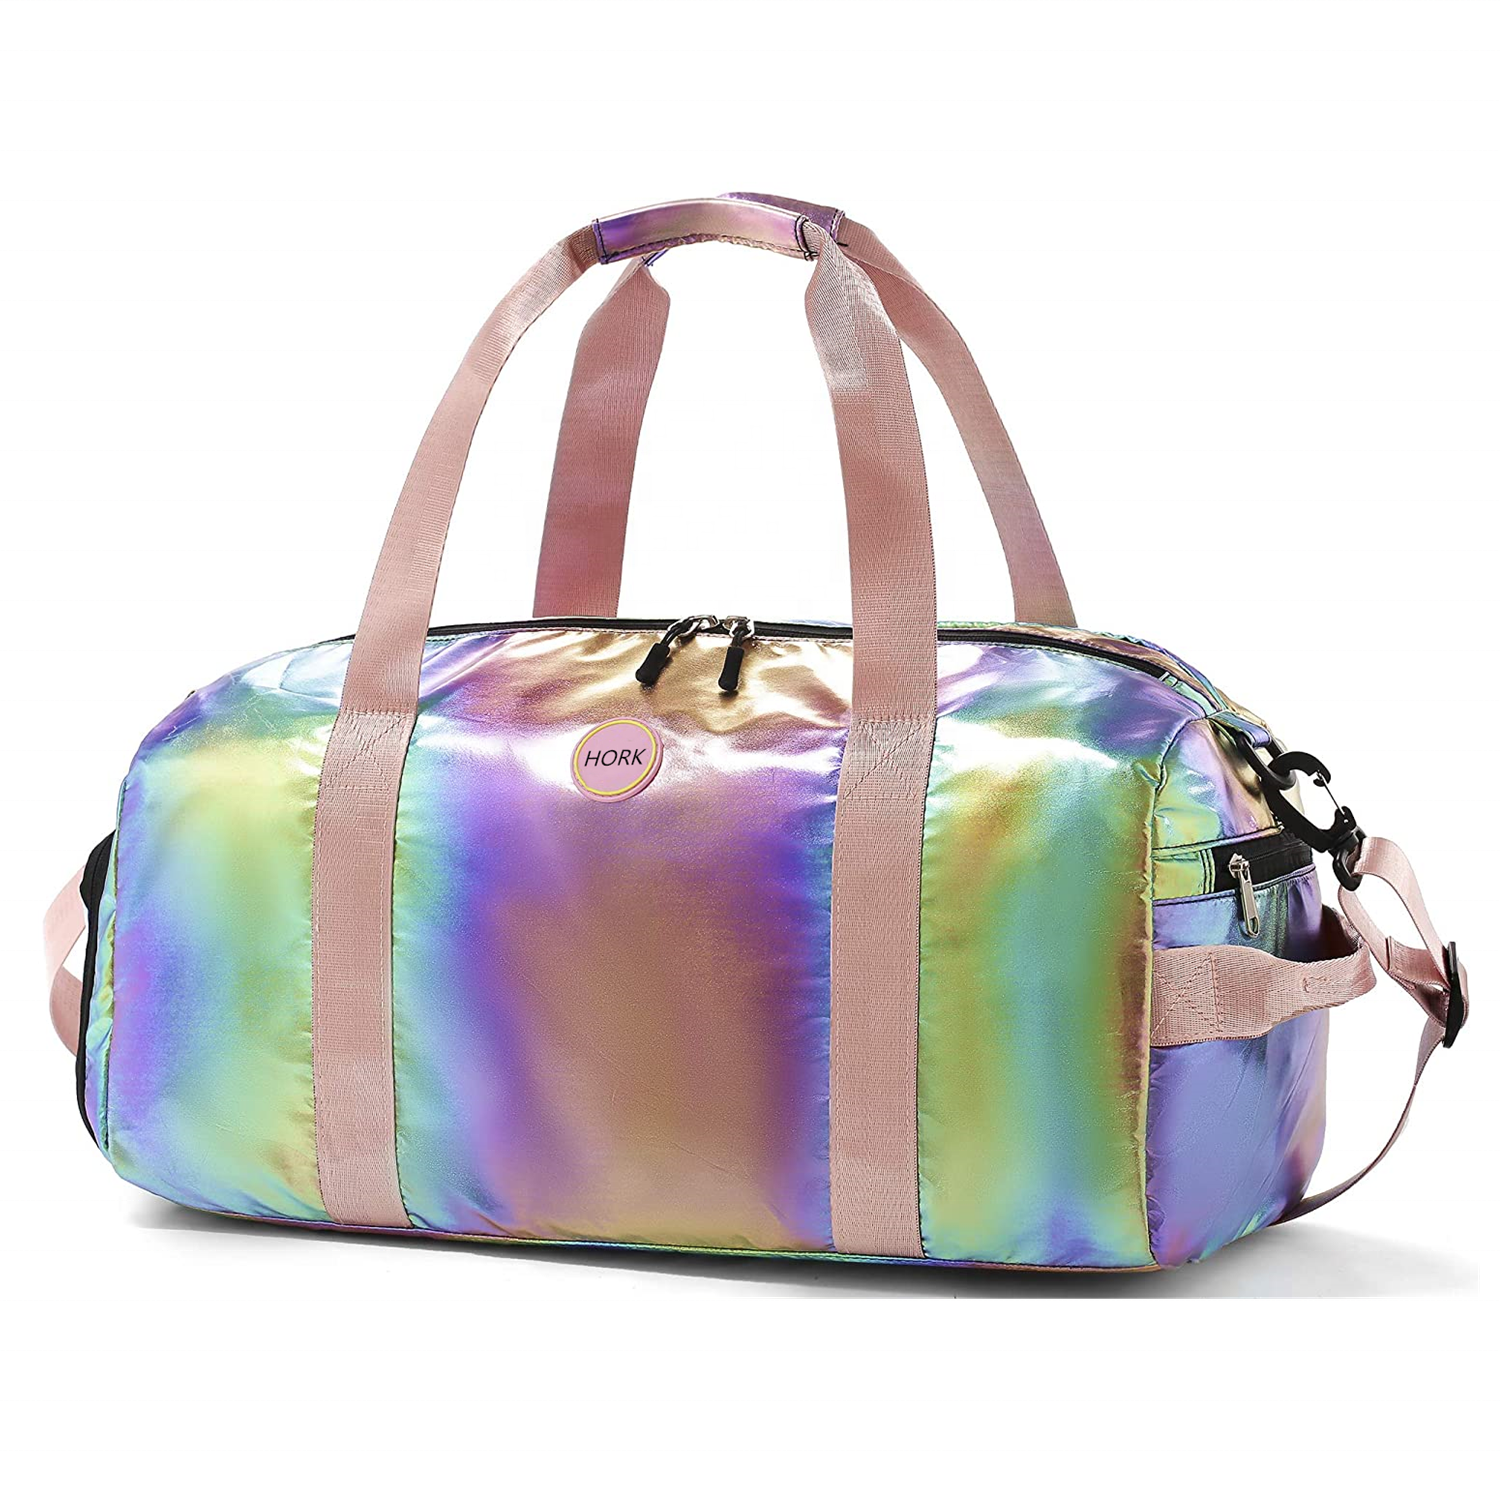 Custom Overnight Holographic Gym Duffel Bag Foldable Weekender Travel Duffle Bag Water-proof Luggage Sport Bag for Kids Girls